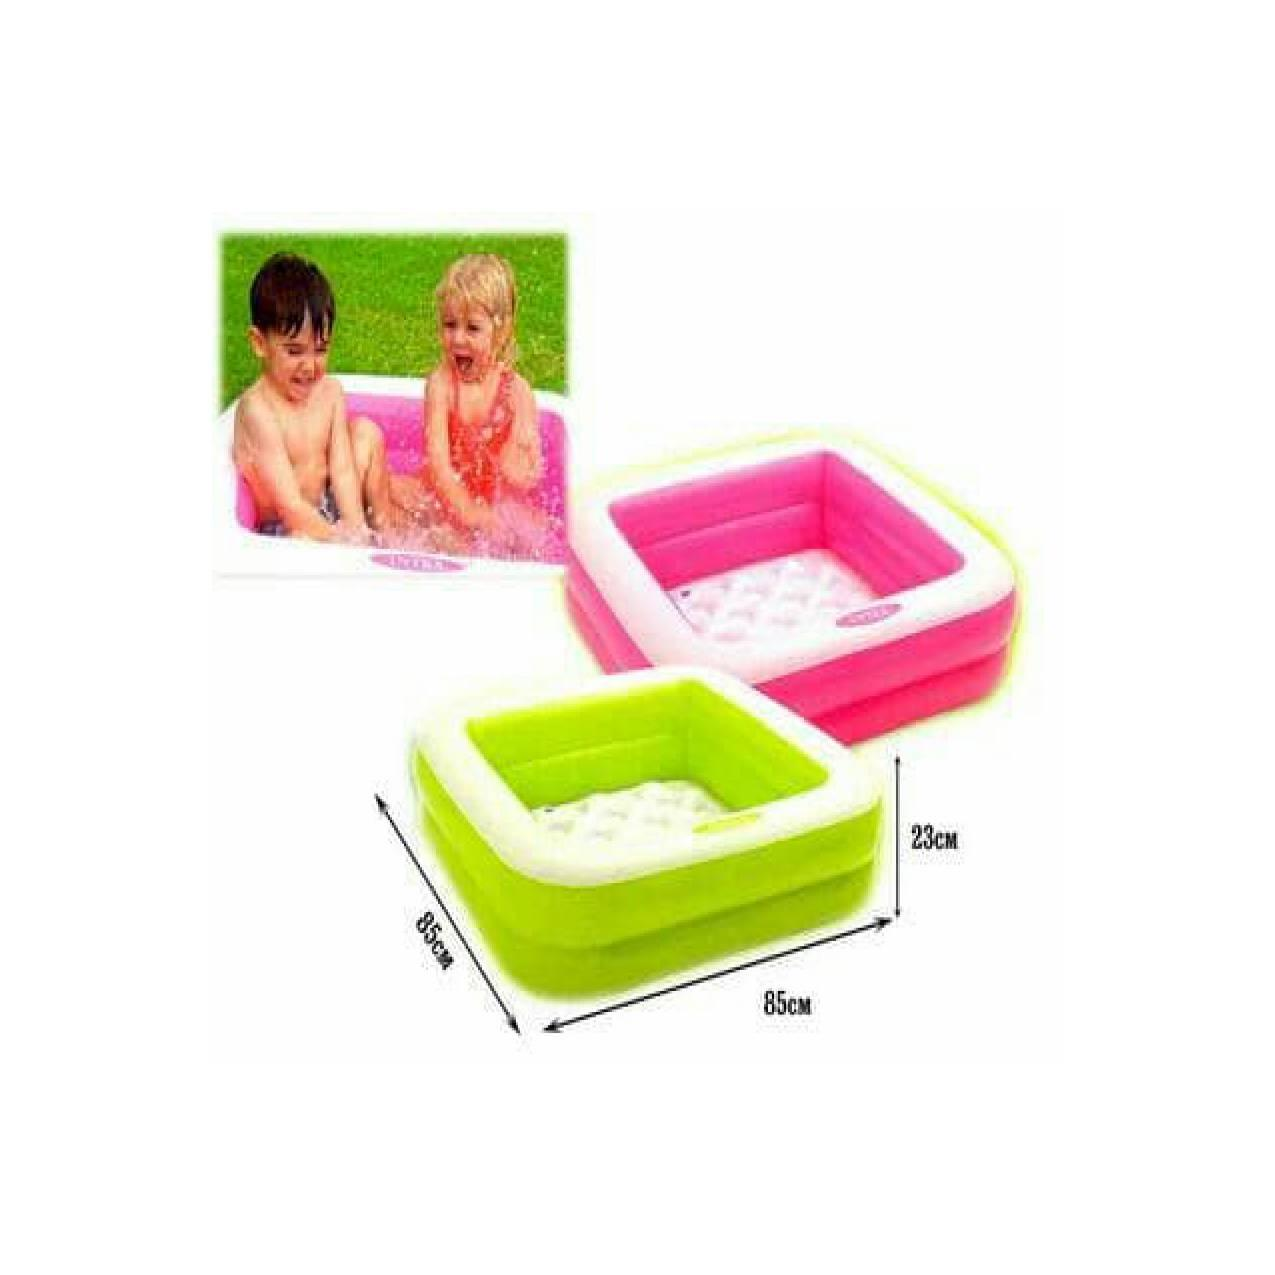 Fitur Kolam Baby Play Box Pool Inflatable Kiddie Swimming Intex Renang Smiley Giraffe 57105 Detail Gambar Terbaru